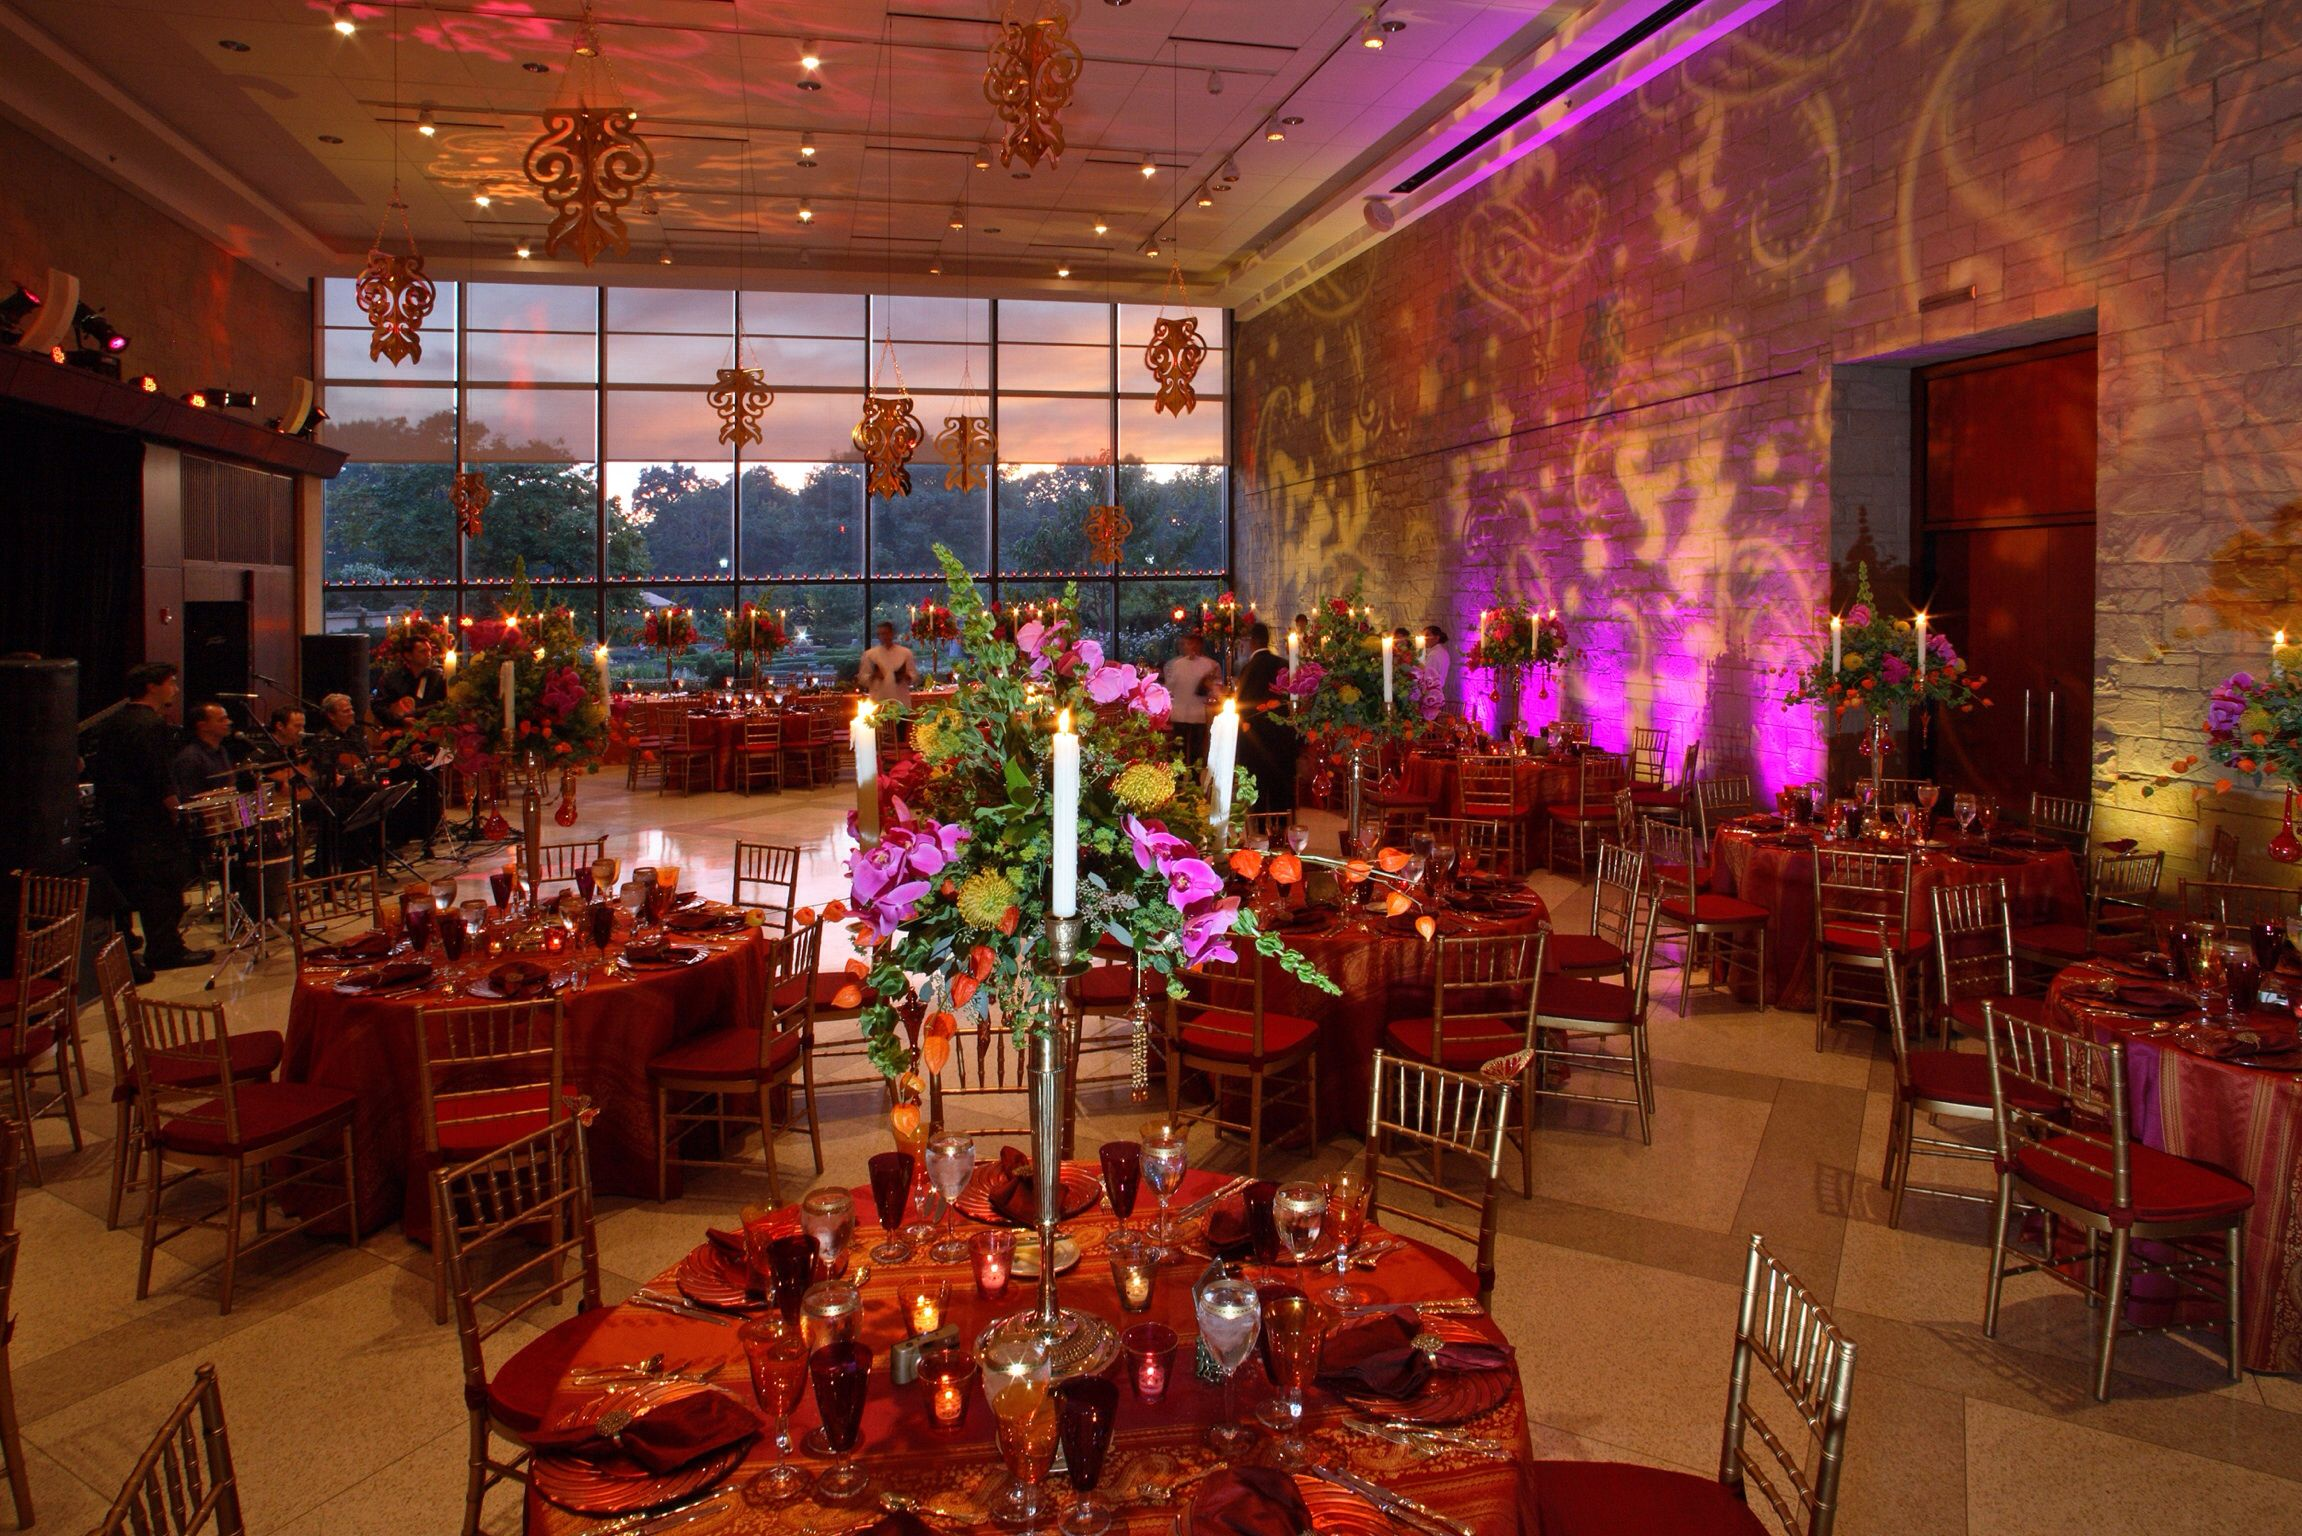 Wedding Design Of Cleveland Botanical Gardens By The Amazing Stephen Tokar